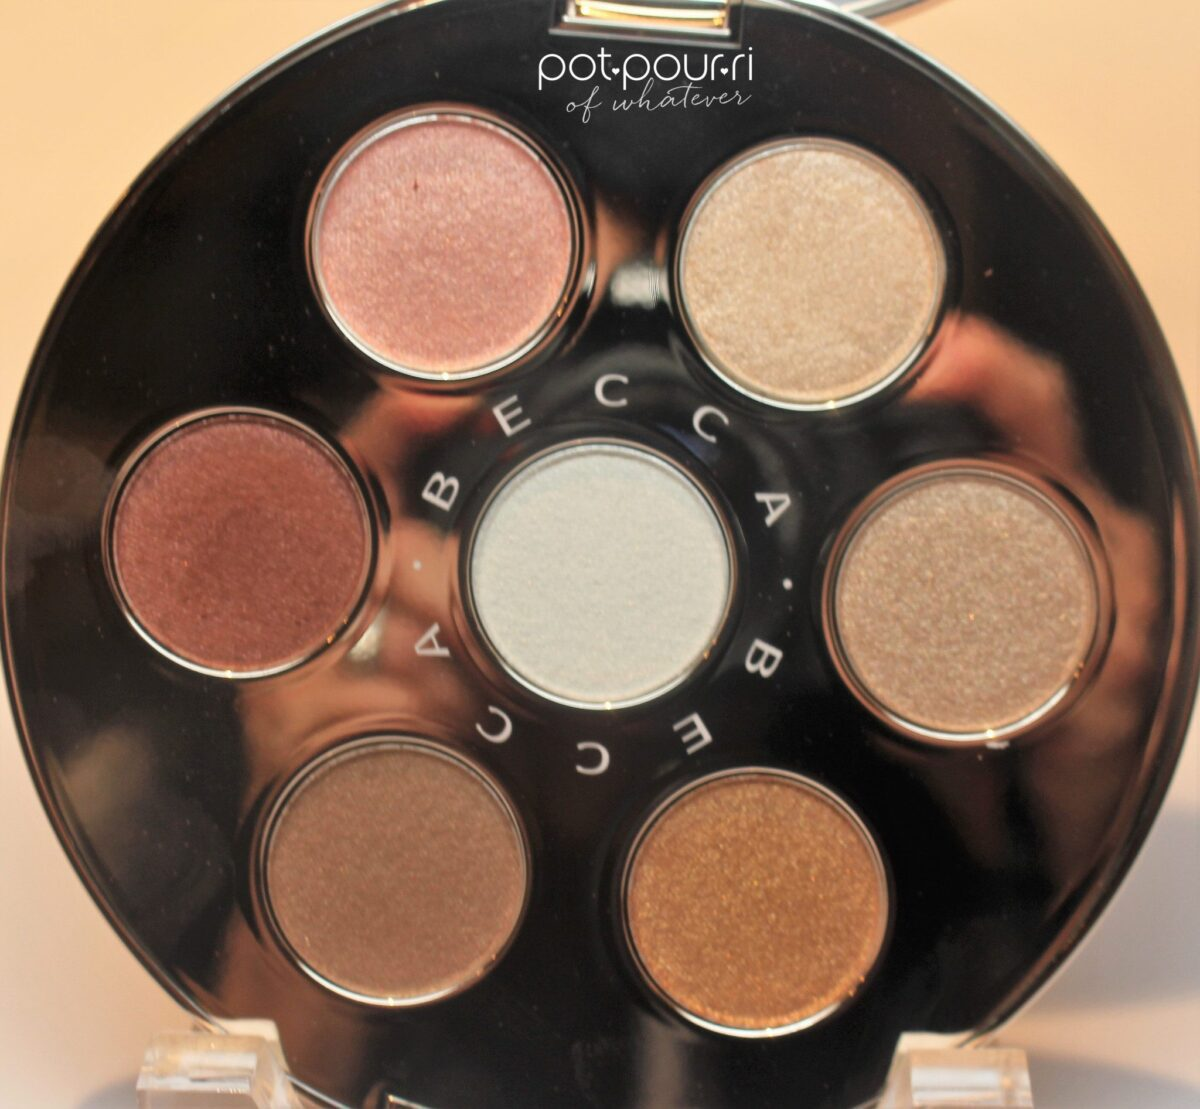 Becca-eyeshadow-apres-ski-palette-highlighters-7-